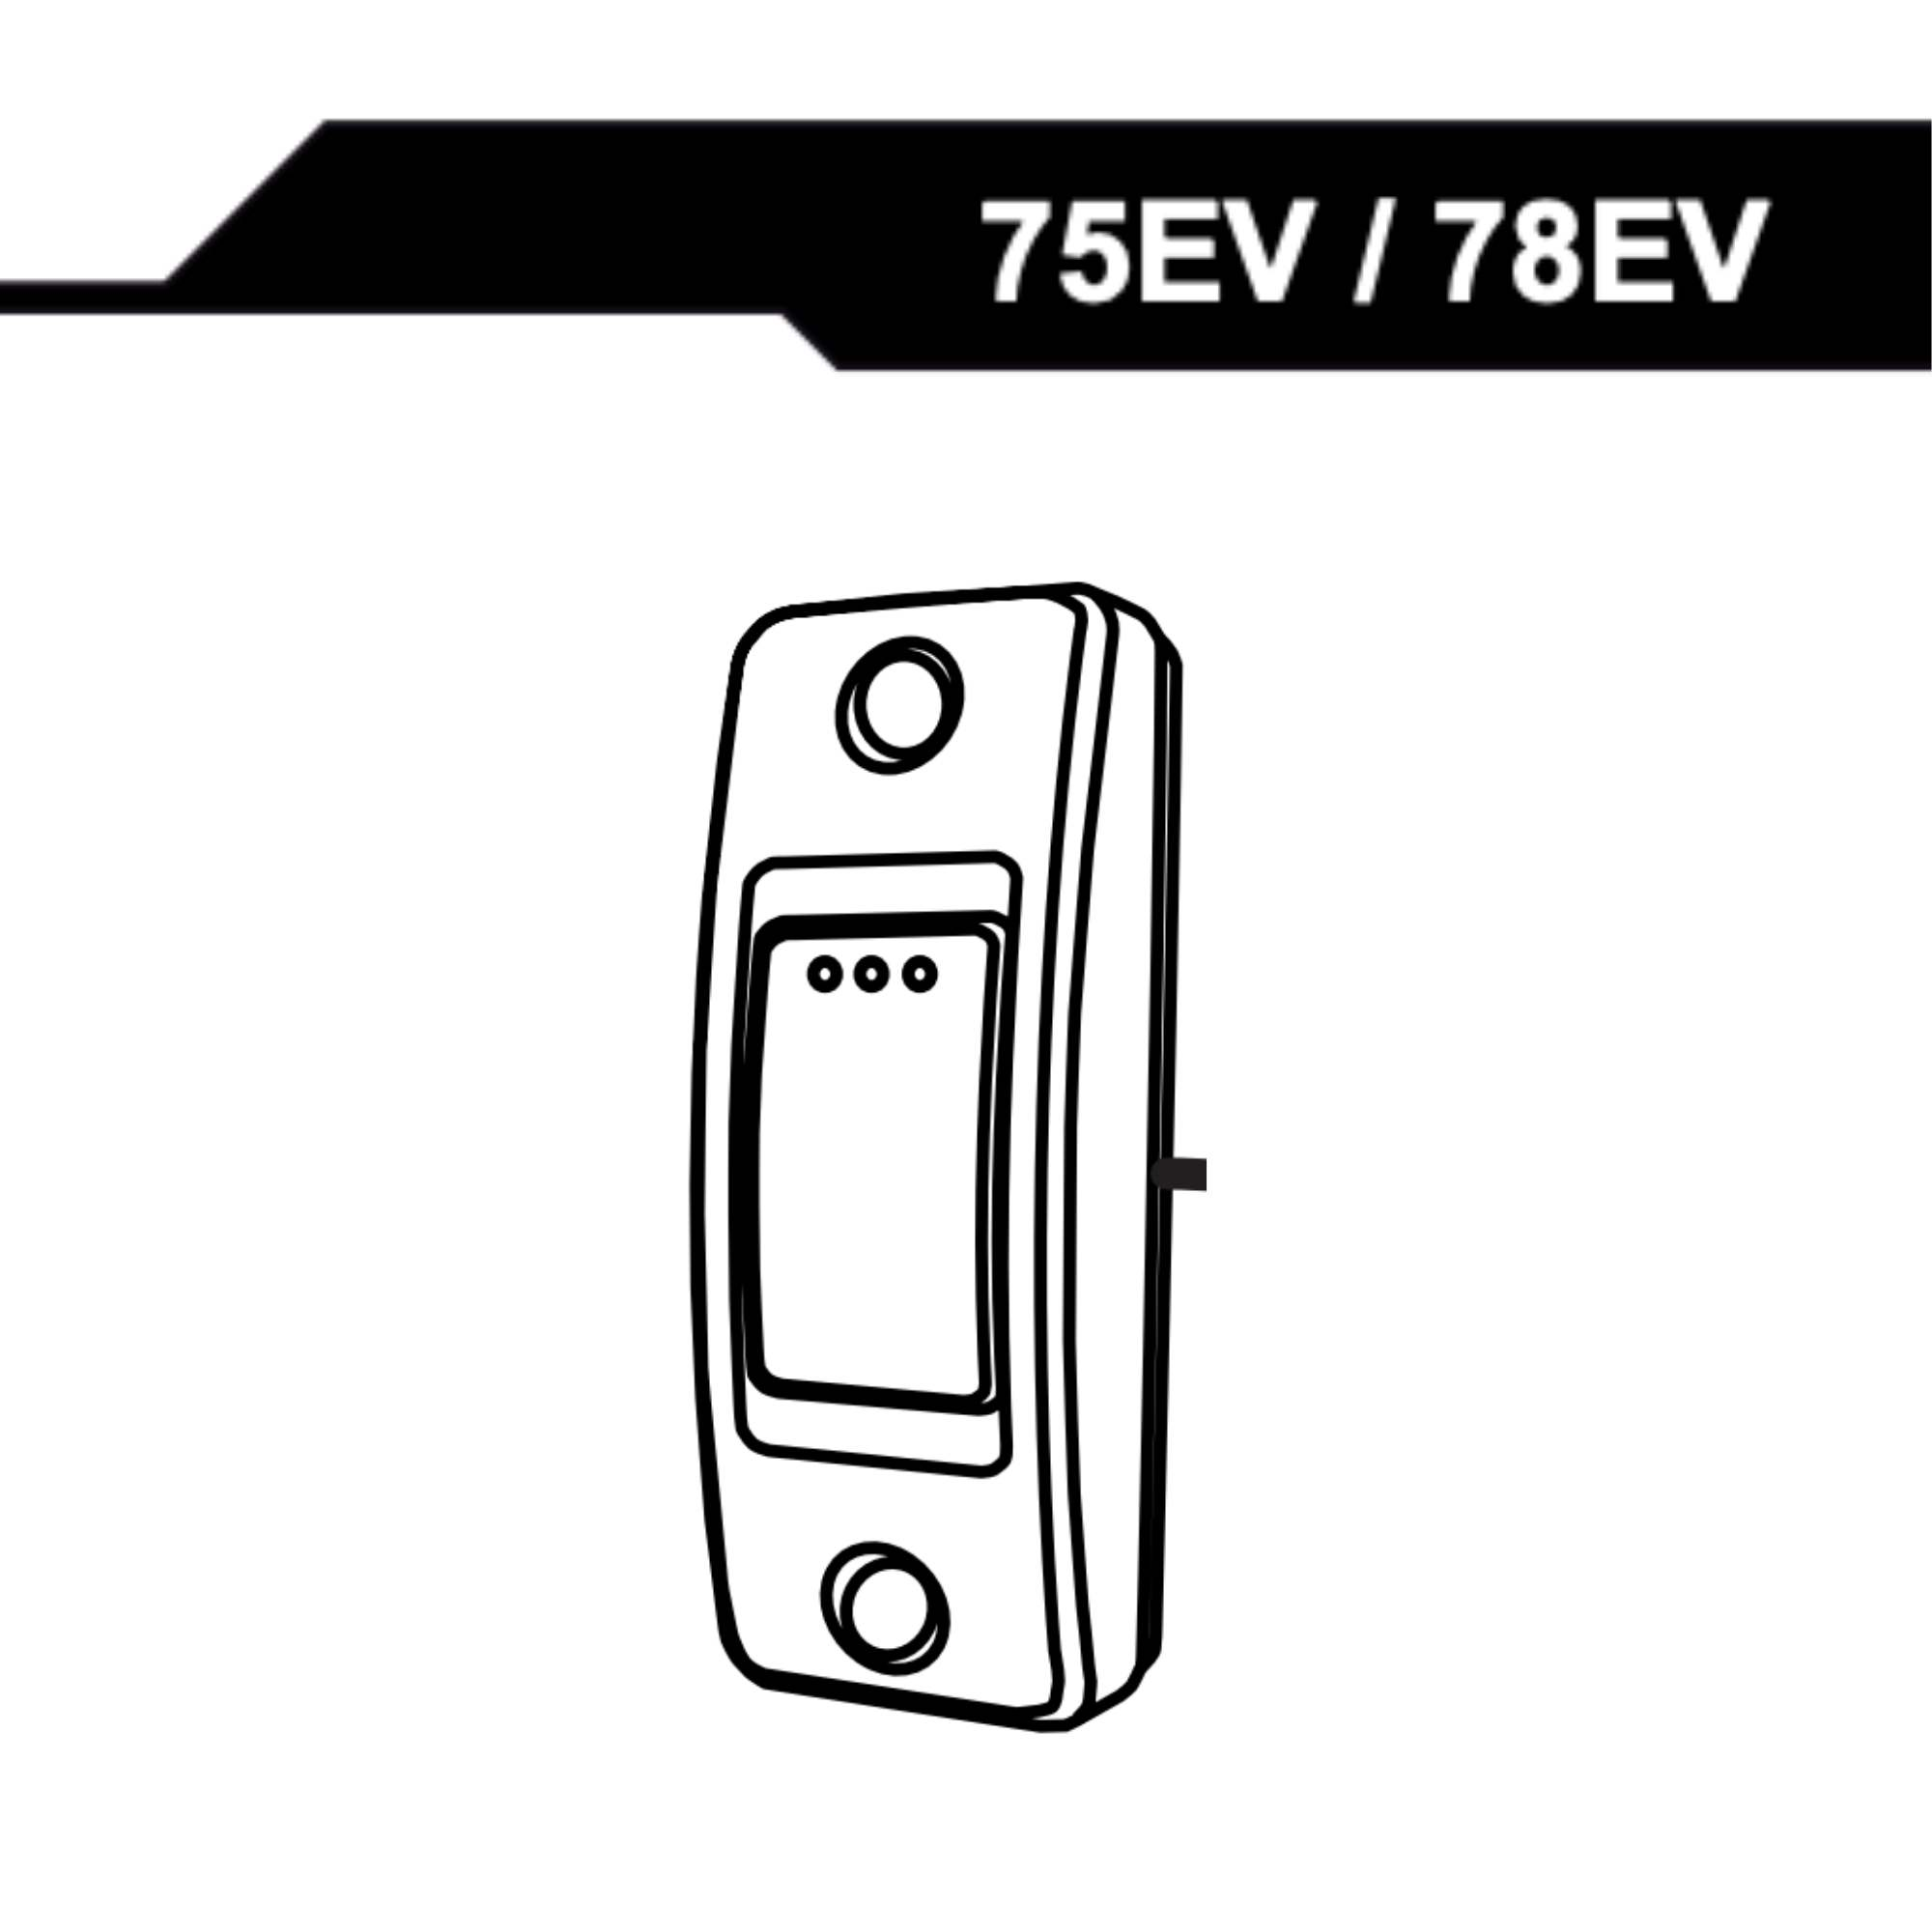 Manual for 75EV/78EV veggbryter